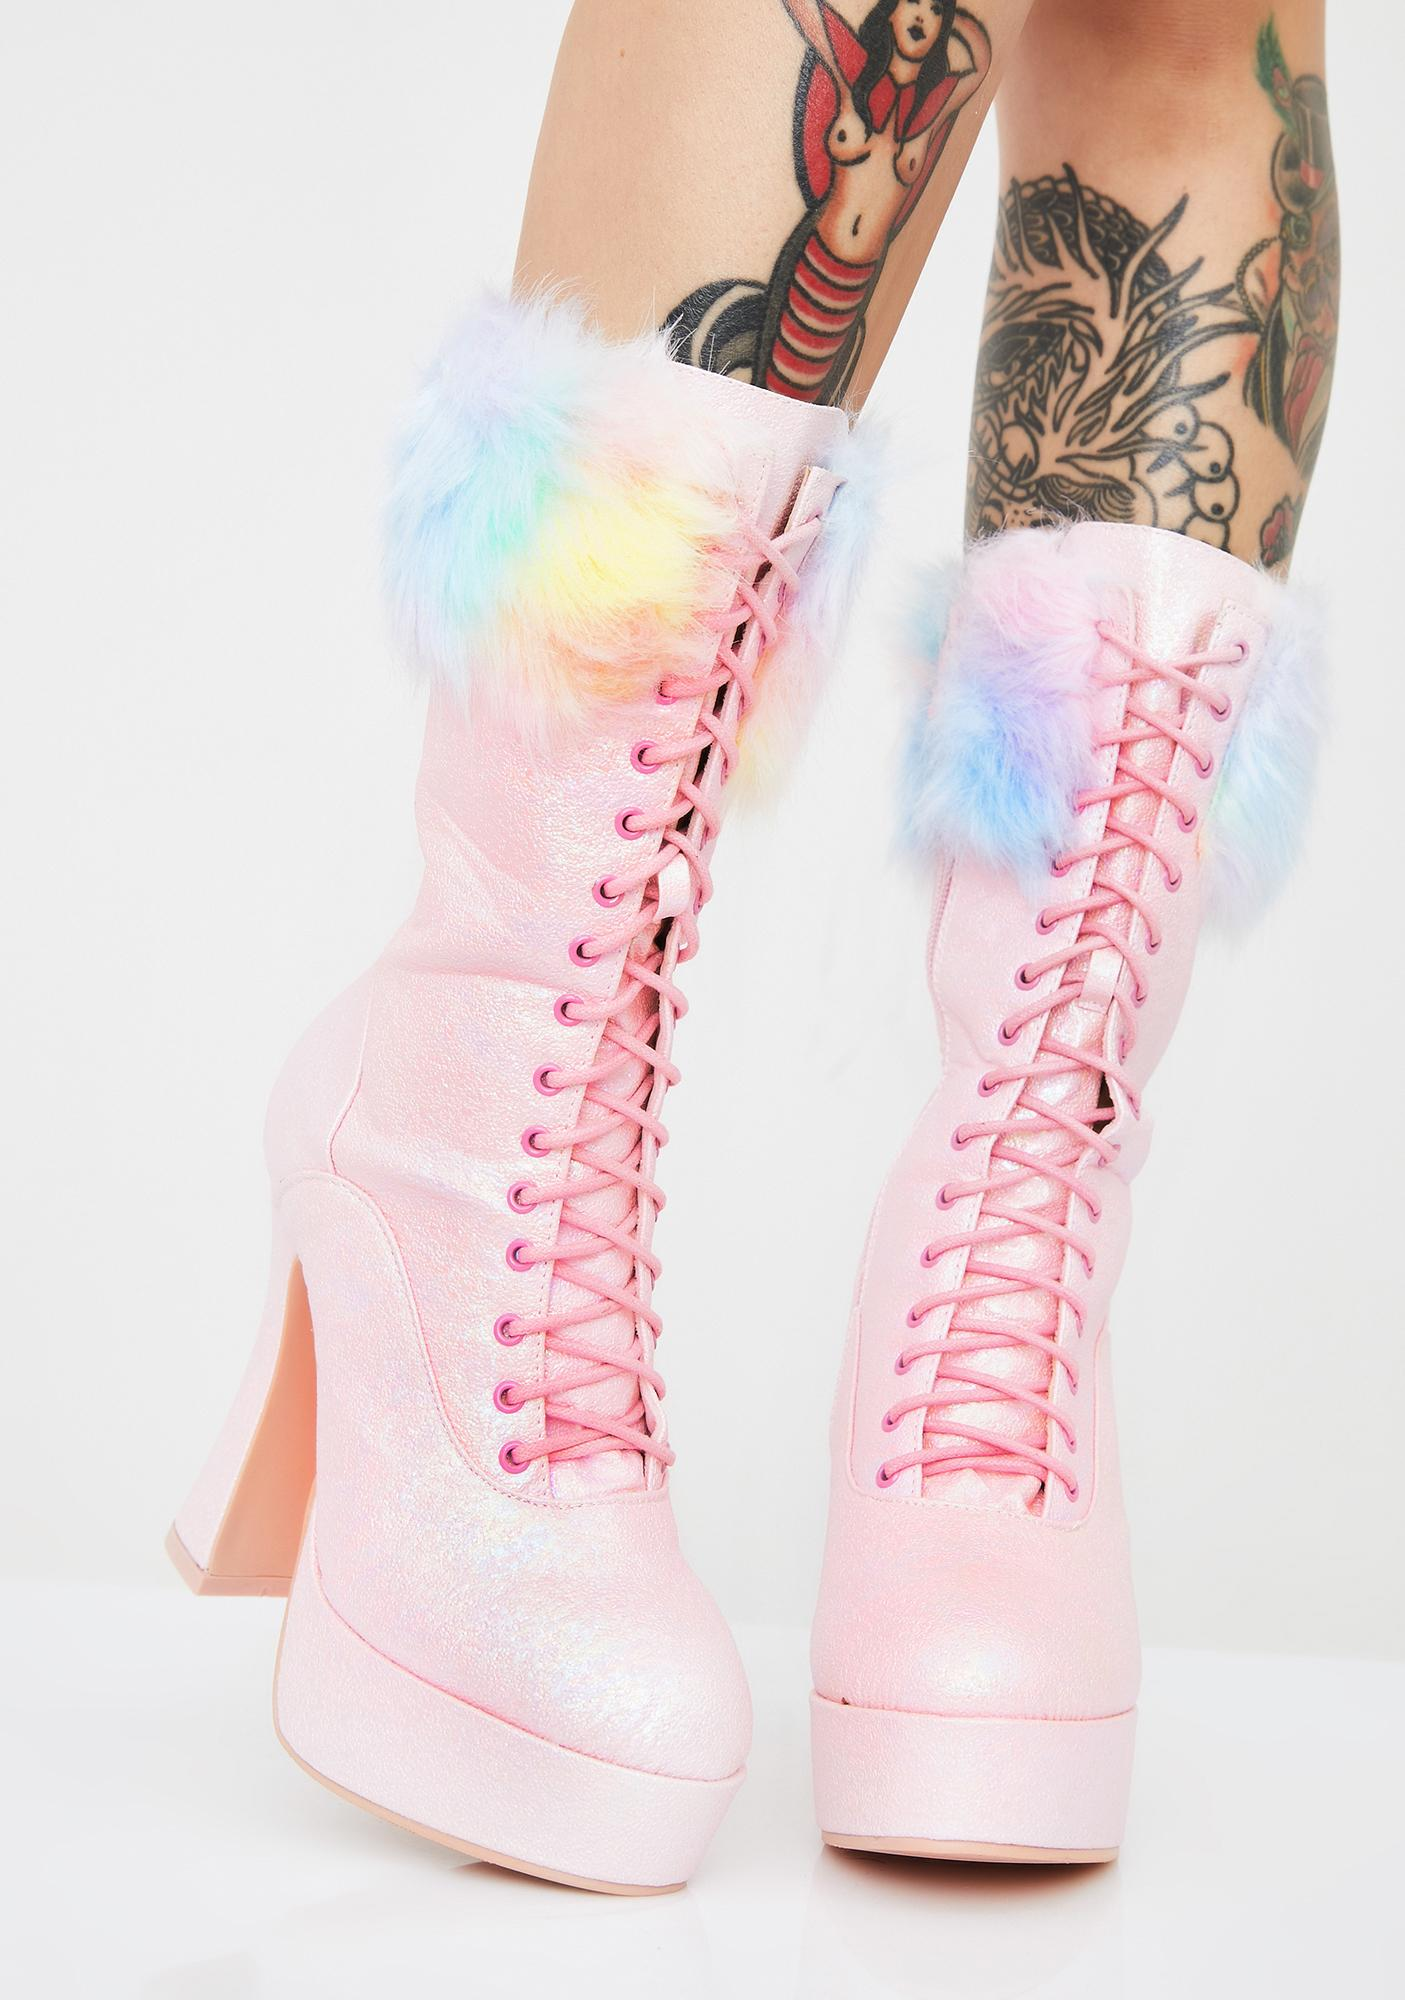 Cotton Candy Chaos Platform Boots